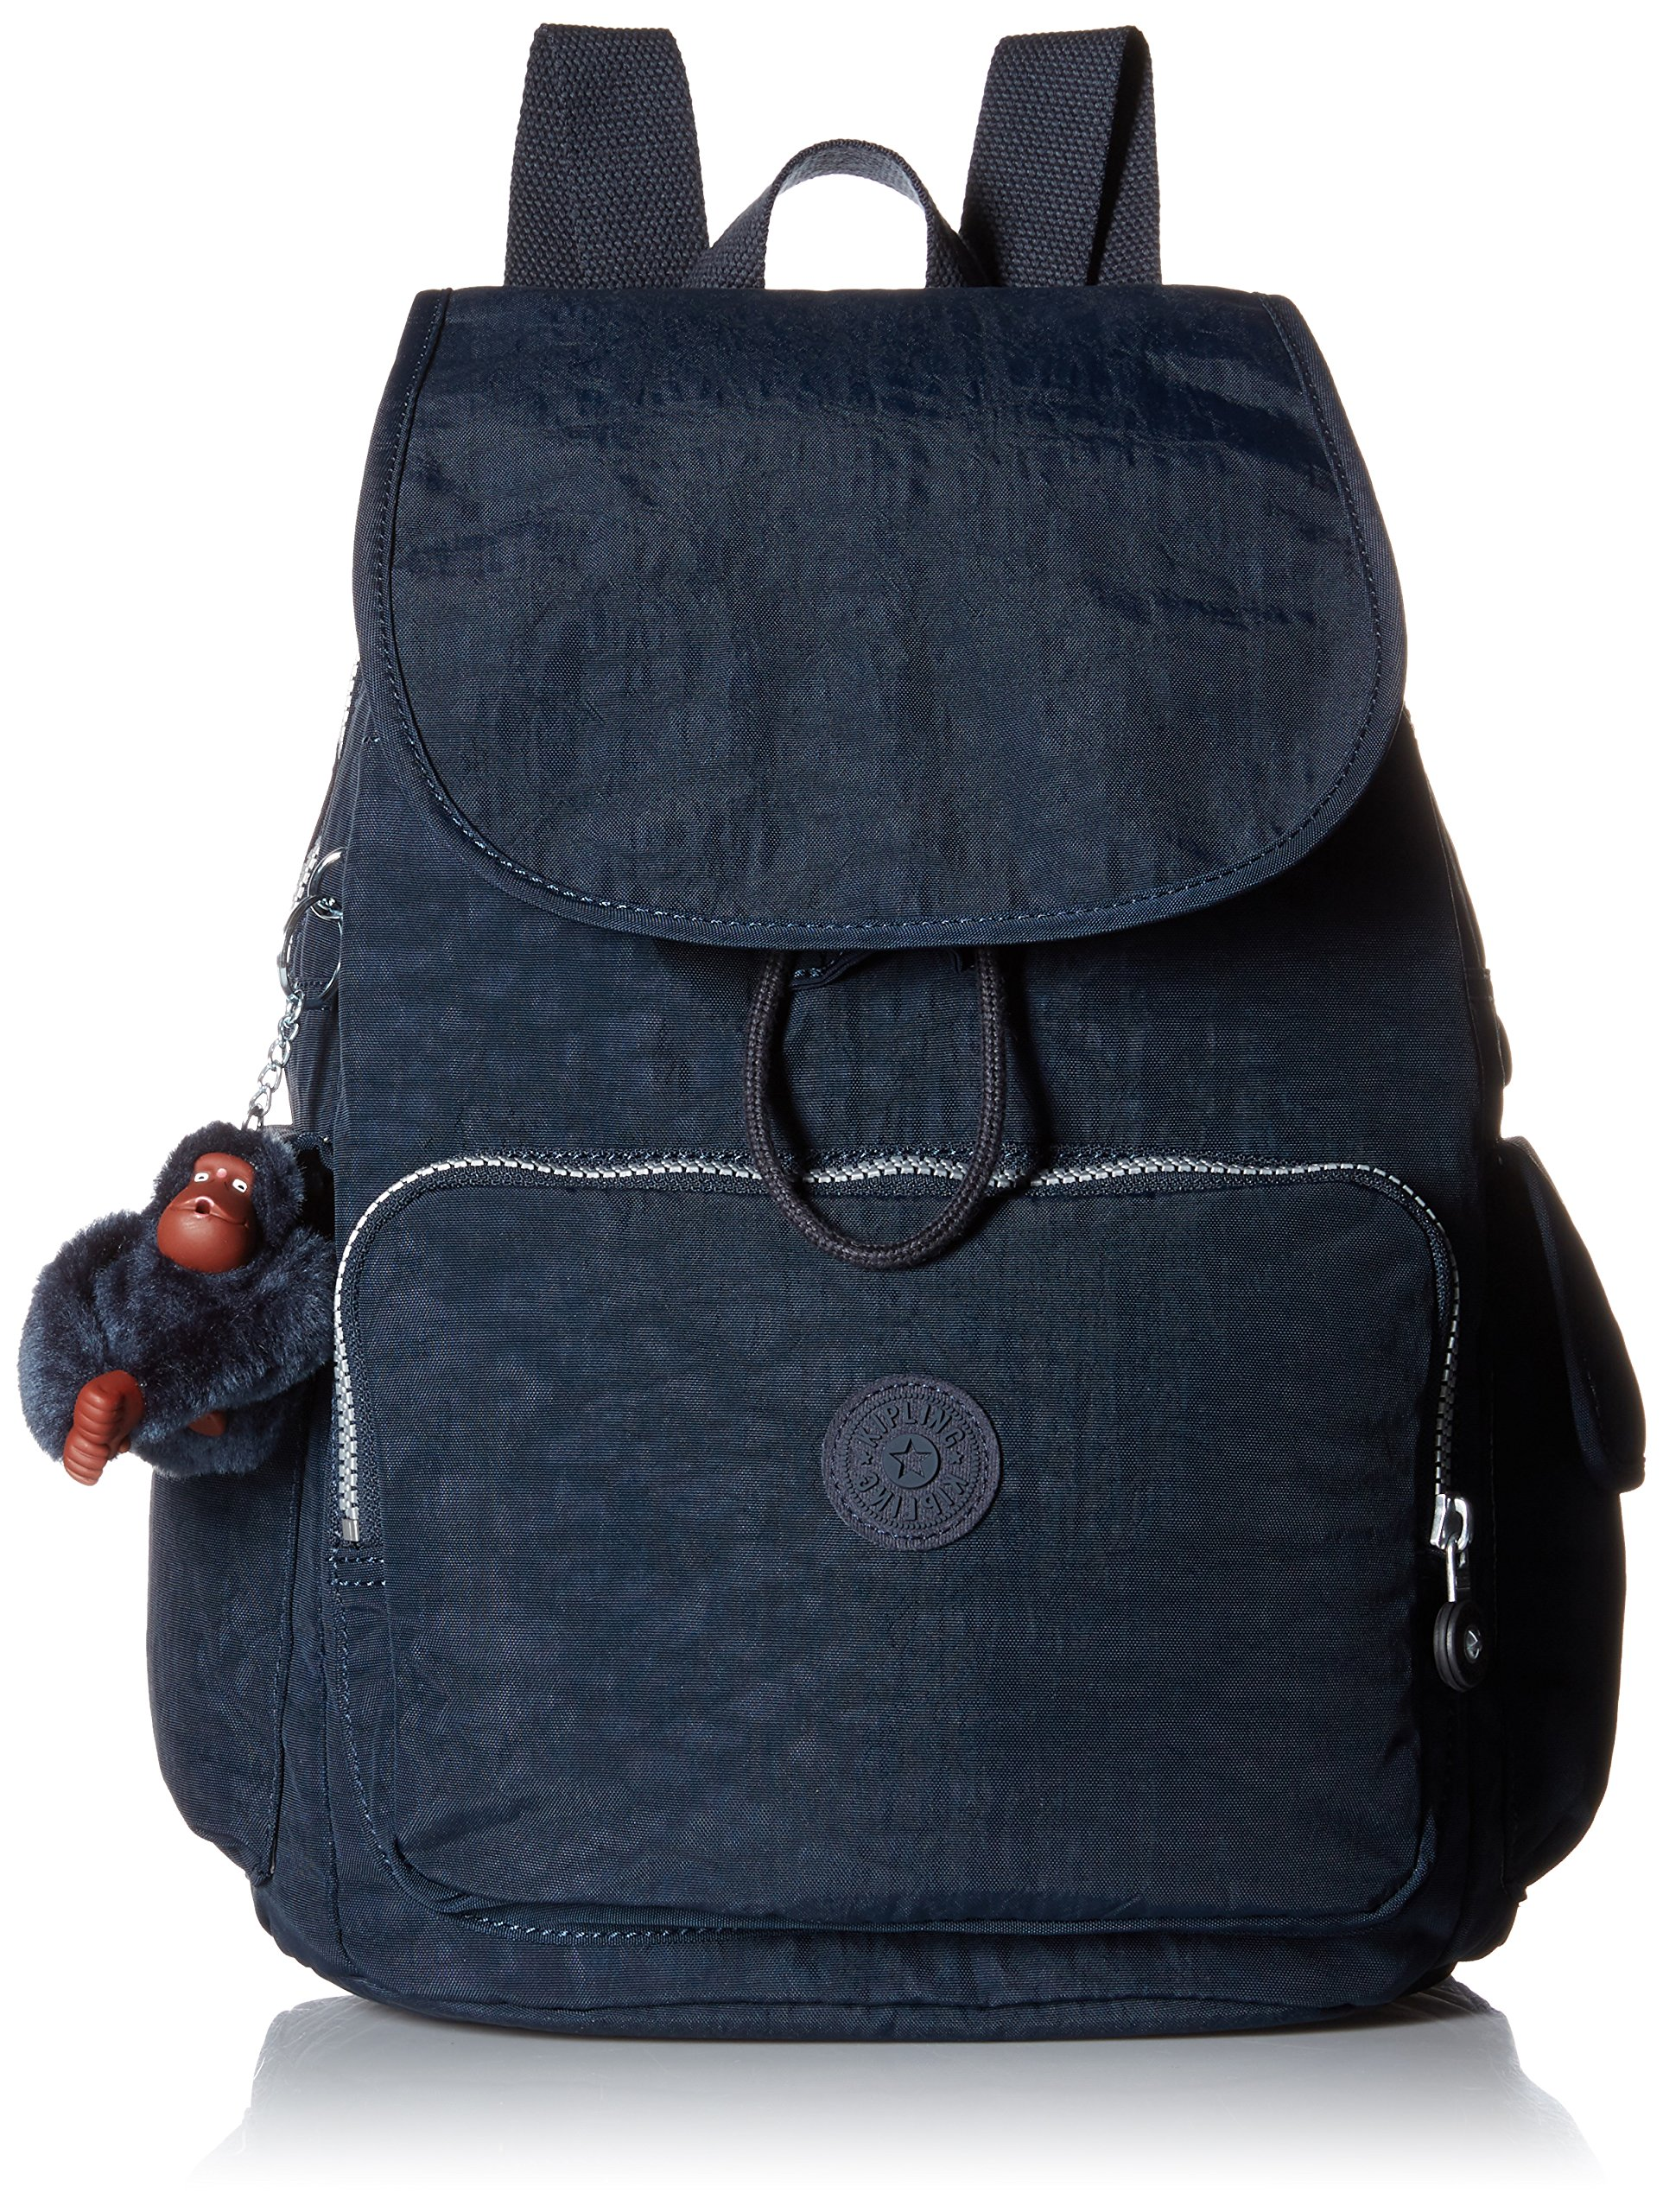 Kipling Ravier bag, True Blue, One Size